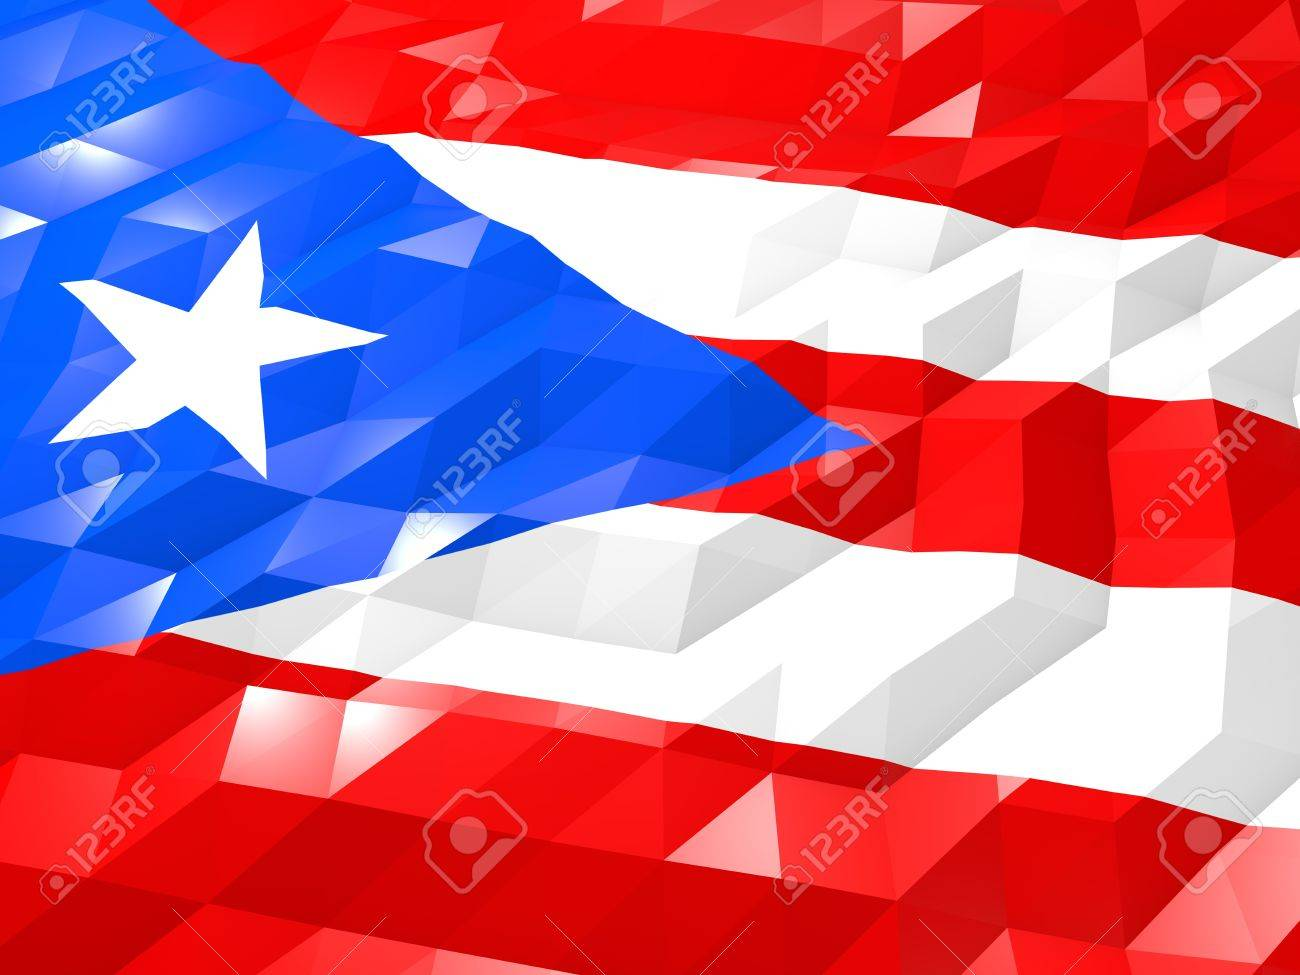 Flag Of Puerto Rico 3d Wallpaper Illustration National Symbol